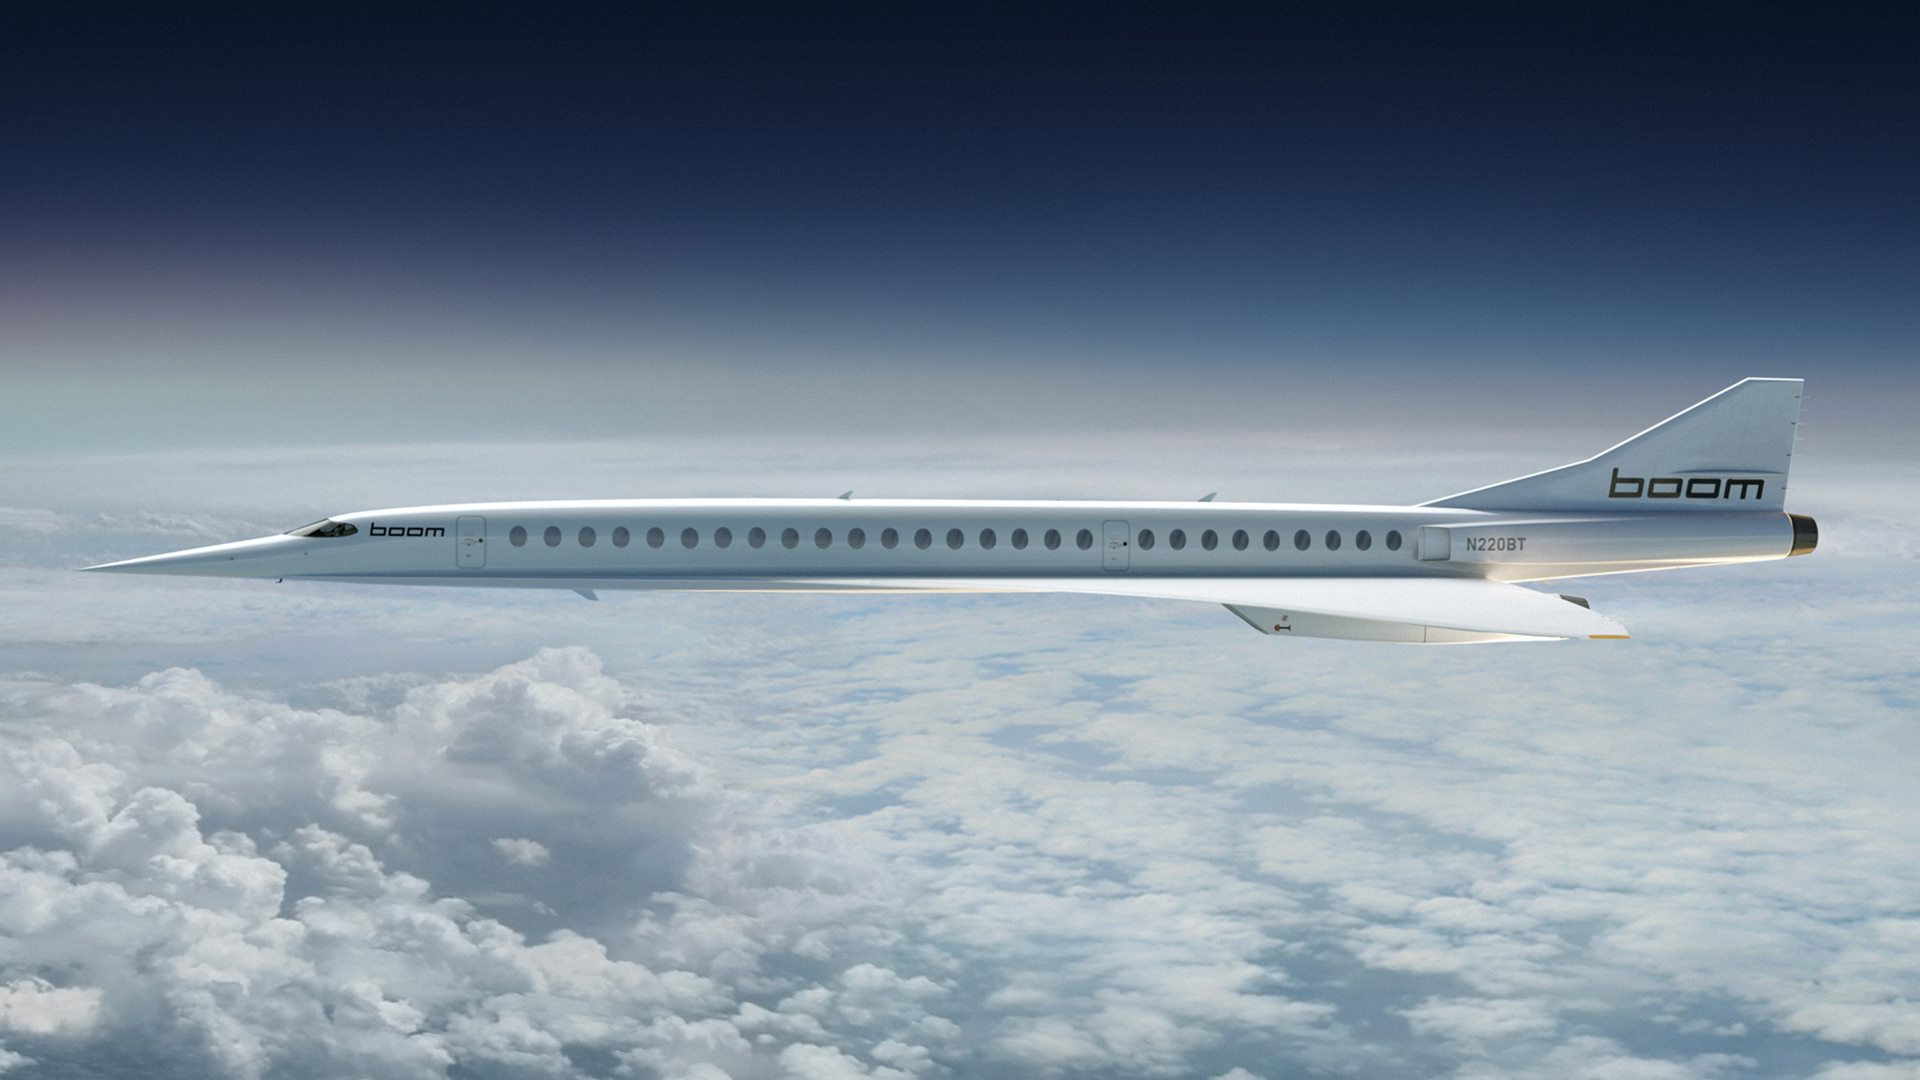 boom, supersonic, travel, flight, China, investment, Ctrip, future, Mach 2